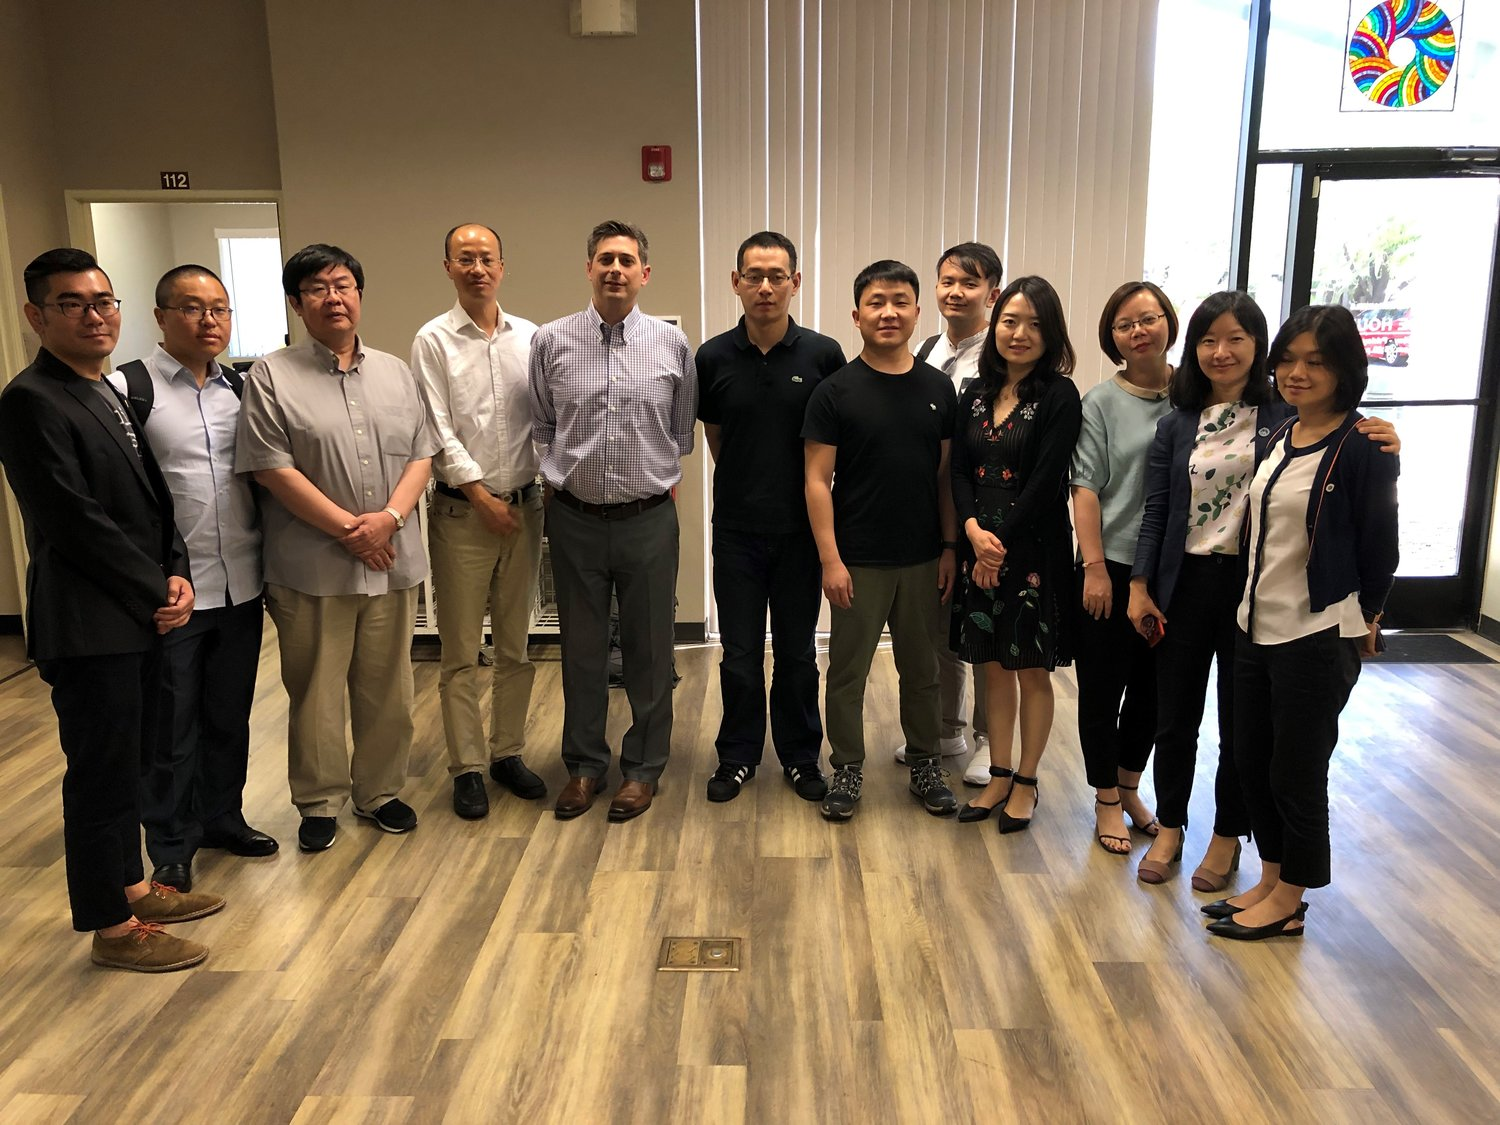 Managing Editor Terrance Thornton hosted Global Ties Arizona students from China. Global Ties Arizona is a local, nonprofit that has been hosting international visitors since 1966. In that role, Global Ties Arizona facilitate professional exchanges with top-notch dignitaries and professionals from virtually every country through a Department of State Program called the International Visitor Leadership Program. Terrance shared information about journalism in today's ever-changing news environment, including our digital daily initiative.